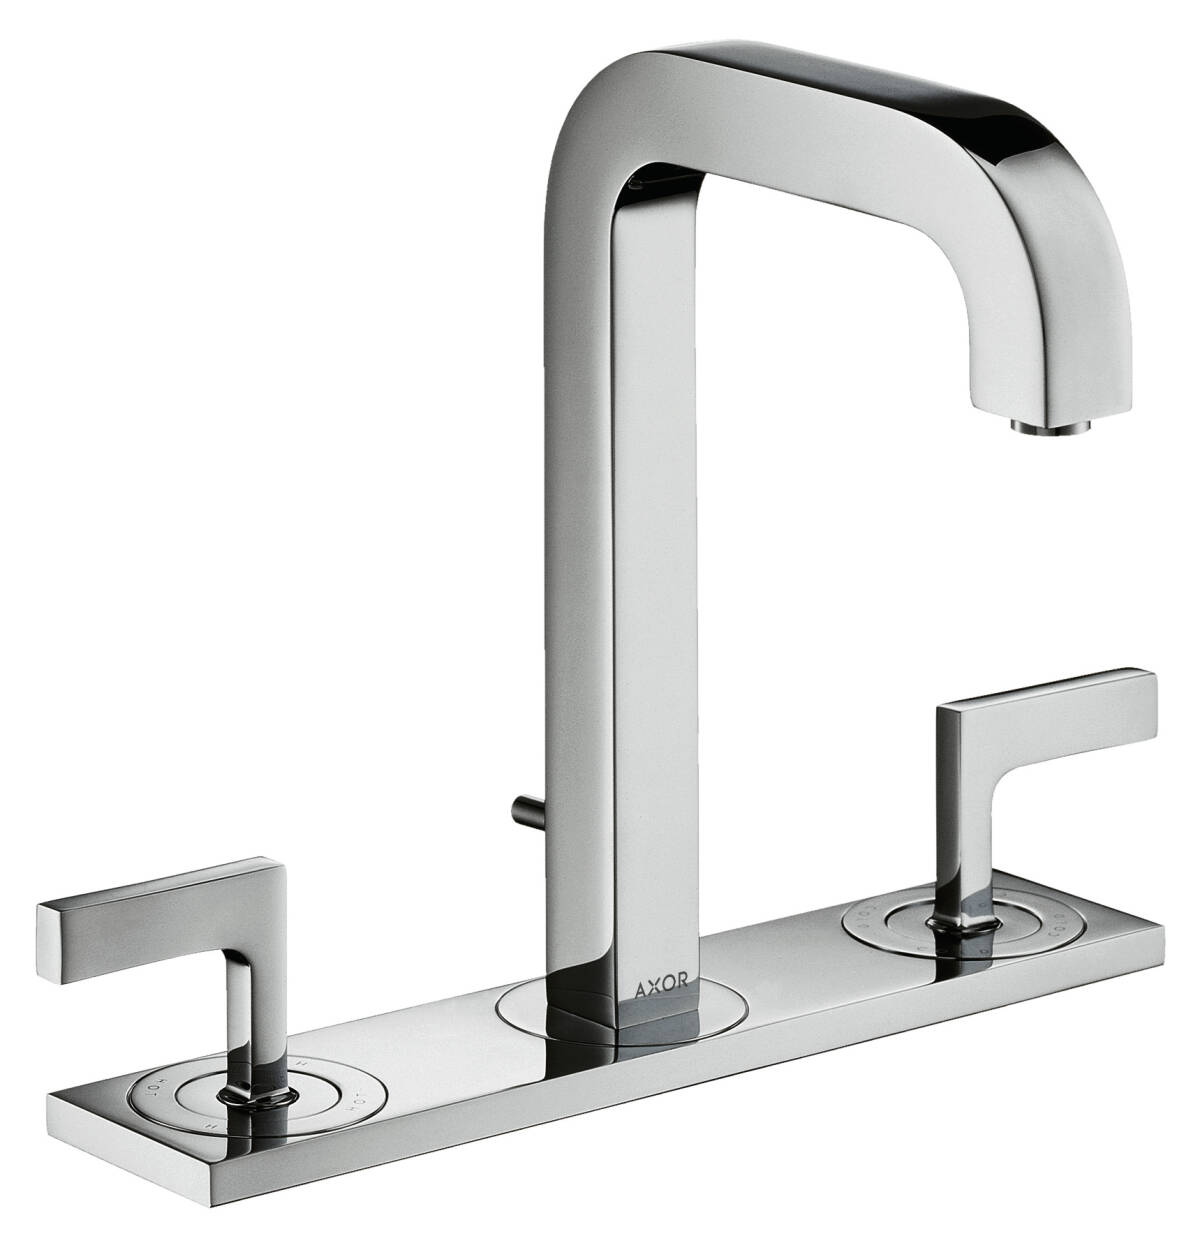 3-hole basin mixer 170 with spout 140 mm, lever handles, plate and pop-up waste set, Brushed Chrome, 39136260